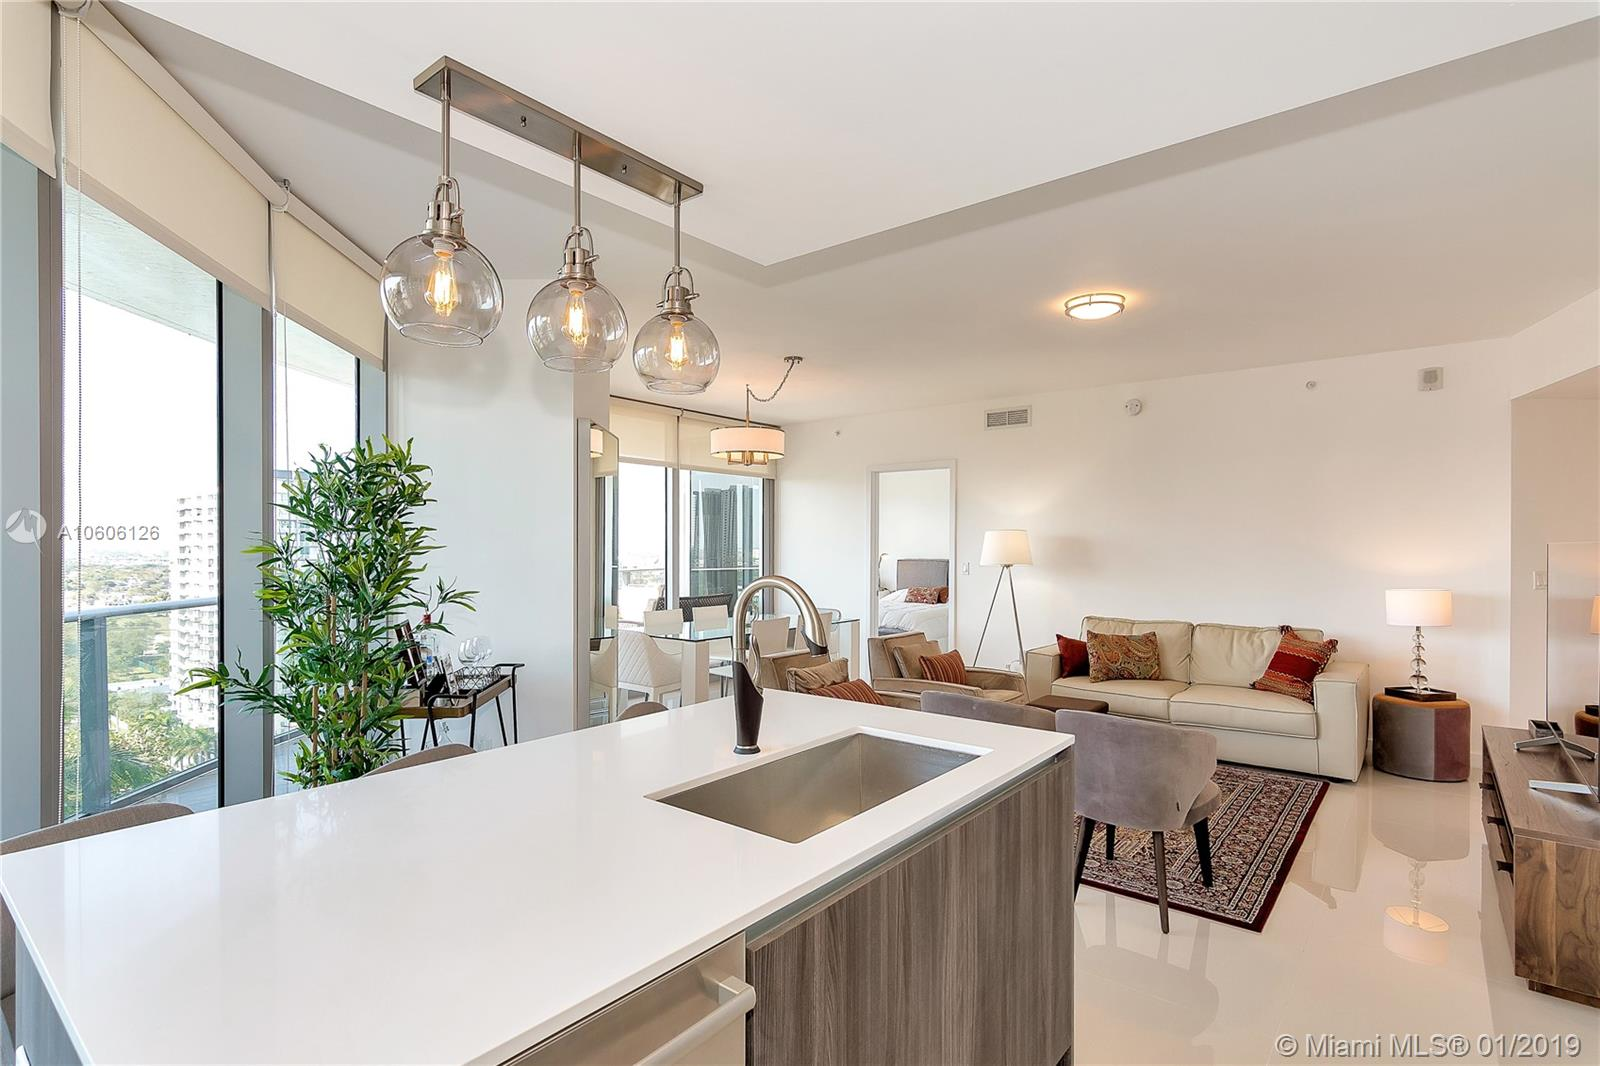 488 NE 18 st # 1700, Miami, Florida 33132, 2 Bedrooms Bedrooms, ,3 BathroomsBathrooms,Residential,For Sale,488 NE 18 st # 1700,A10606126